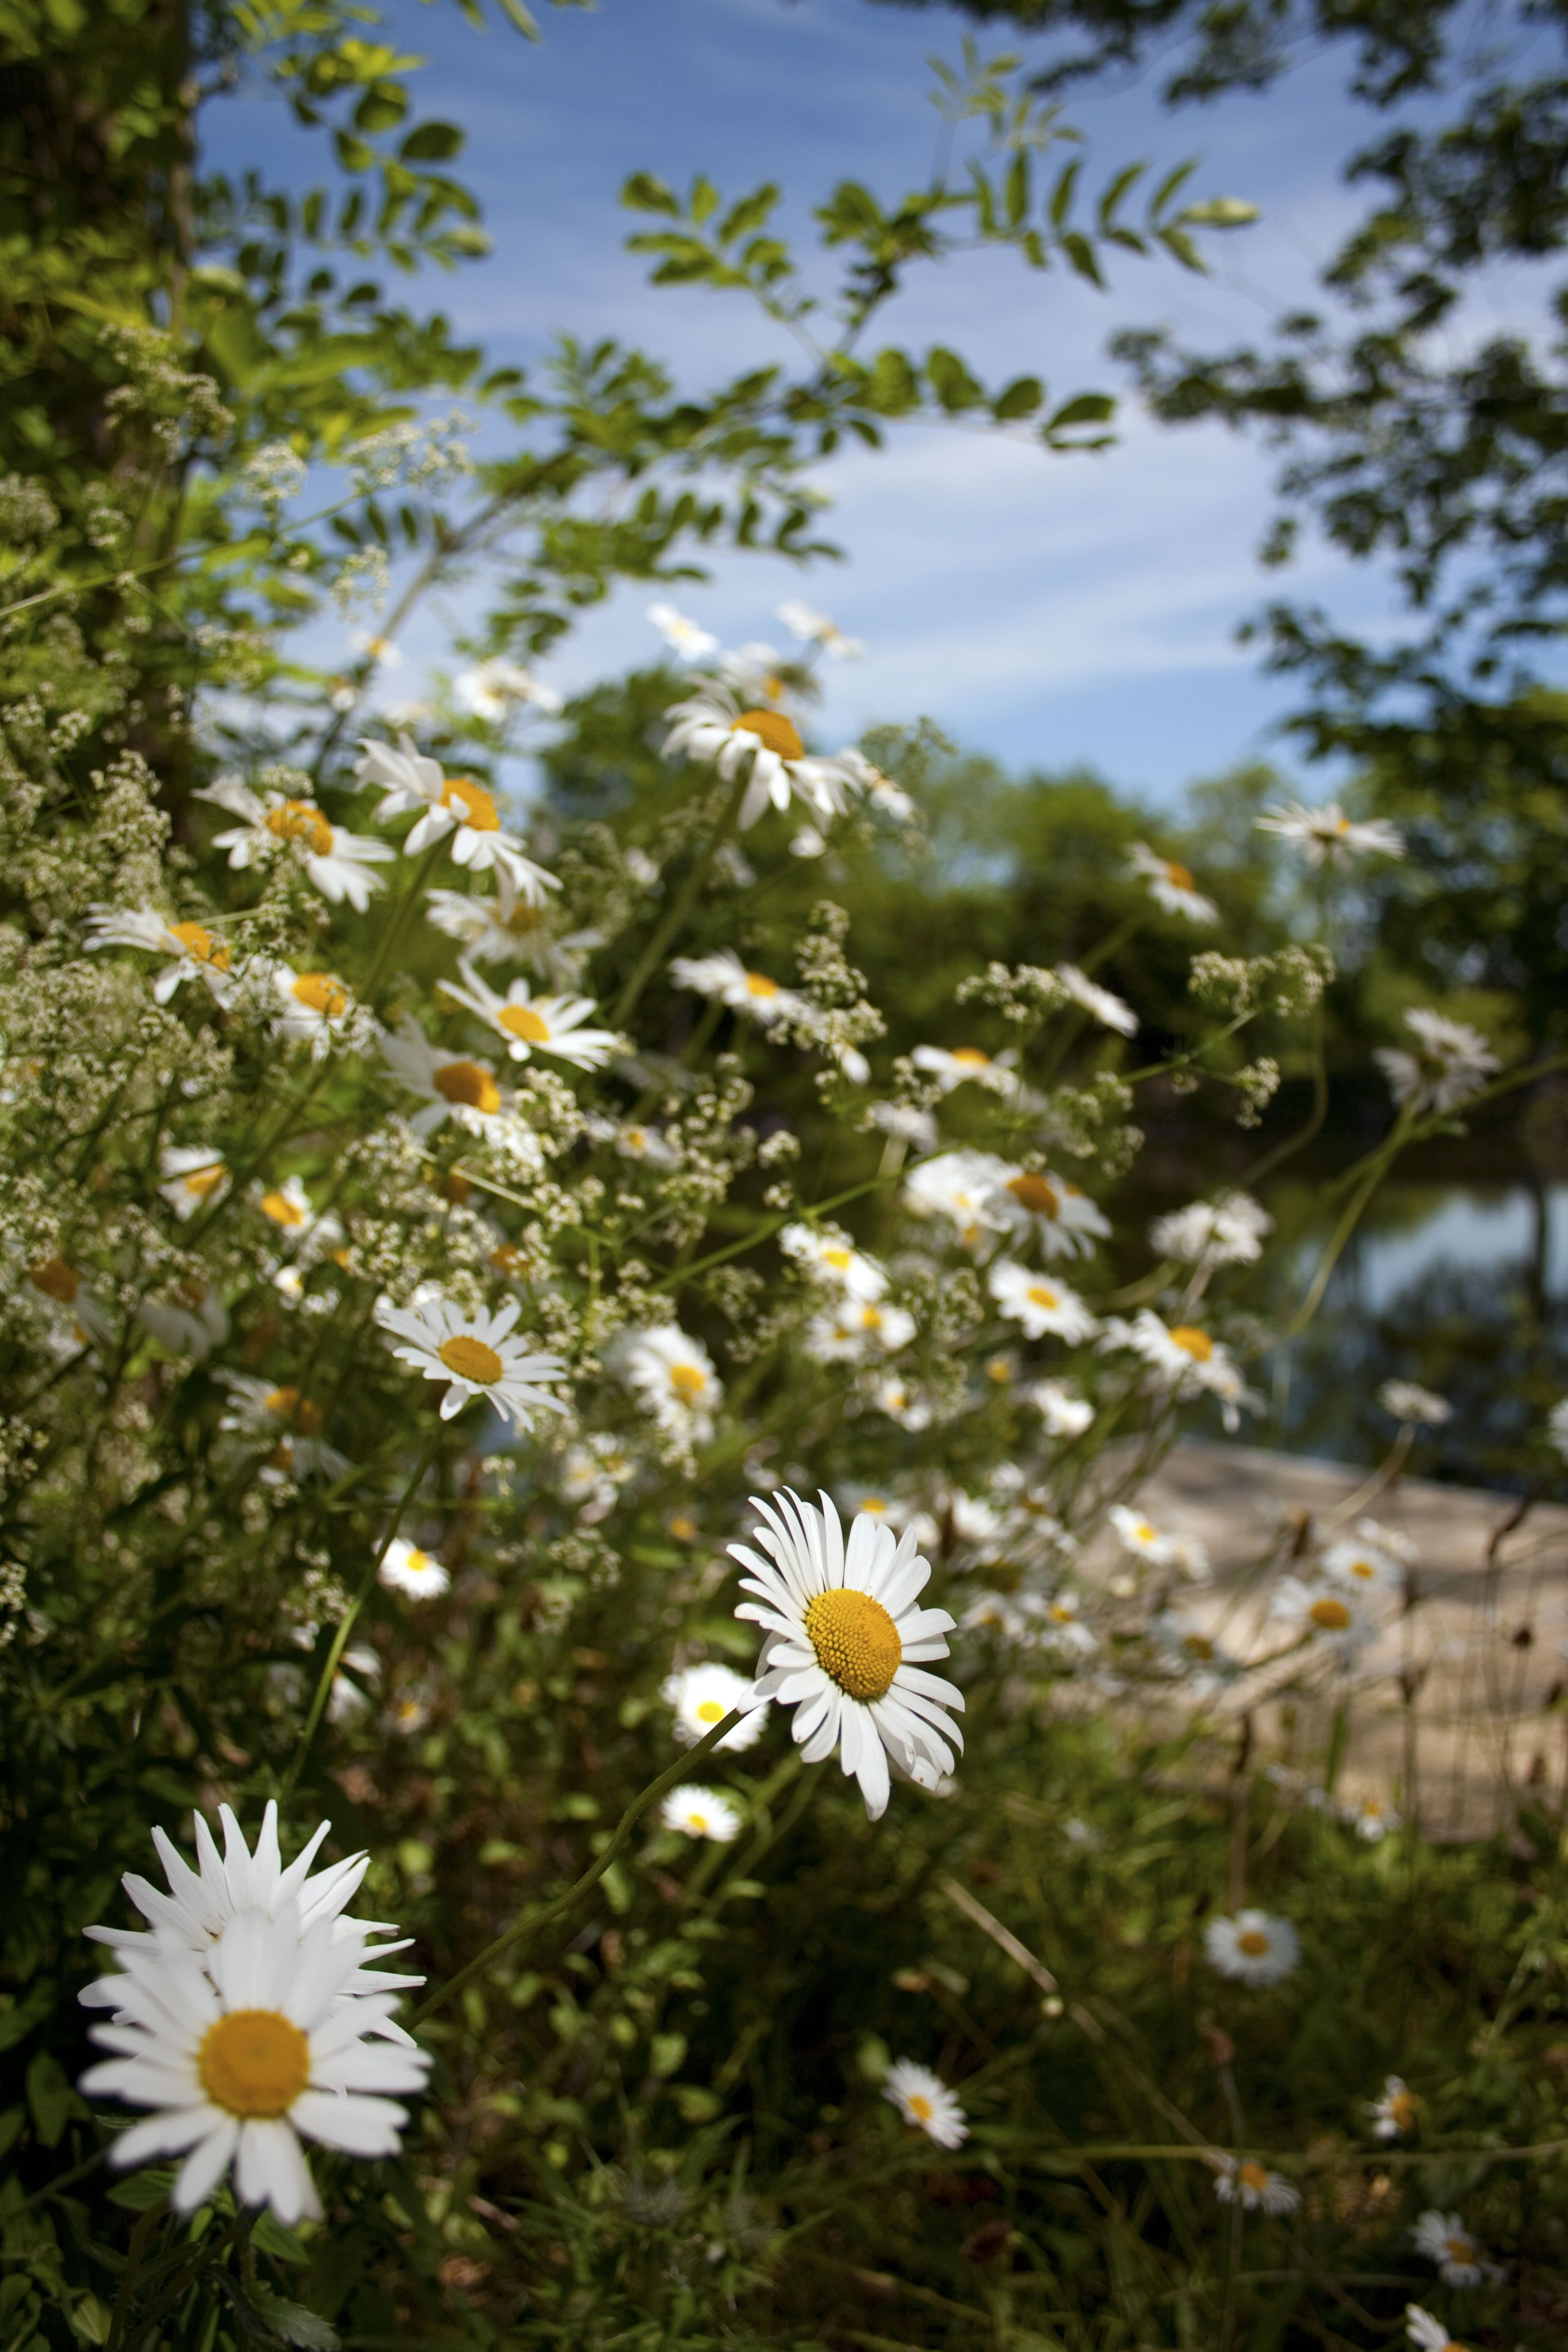 Oh my love for daisys dancing daisies pinterest flowers oh my love for daisys izmirmasajfo